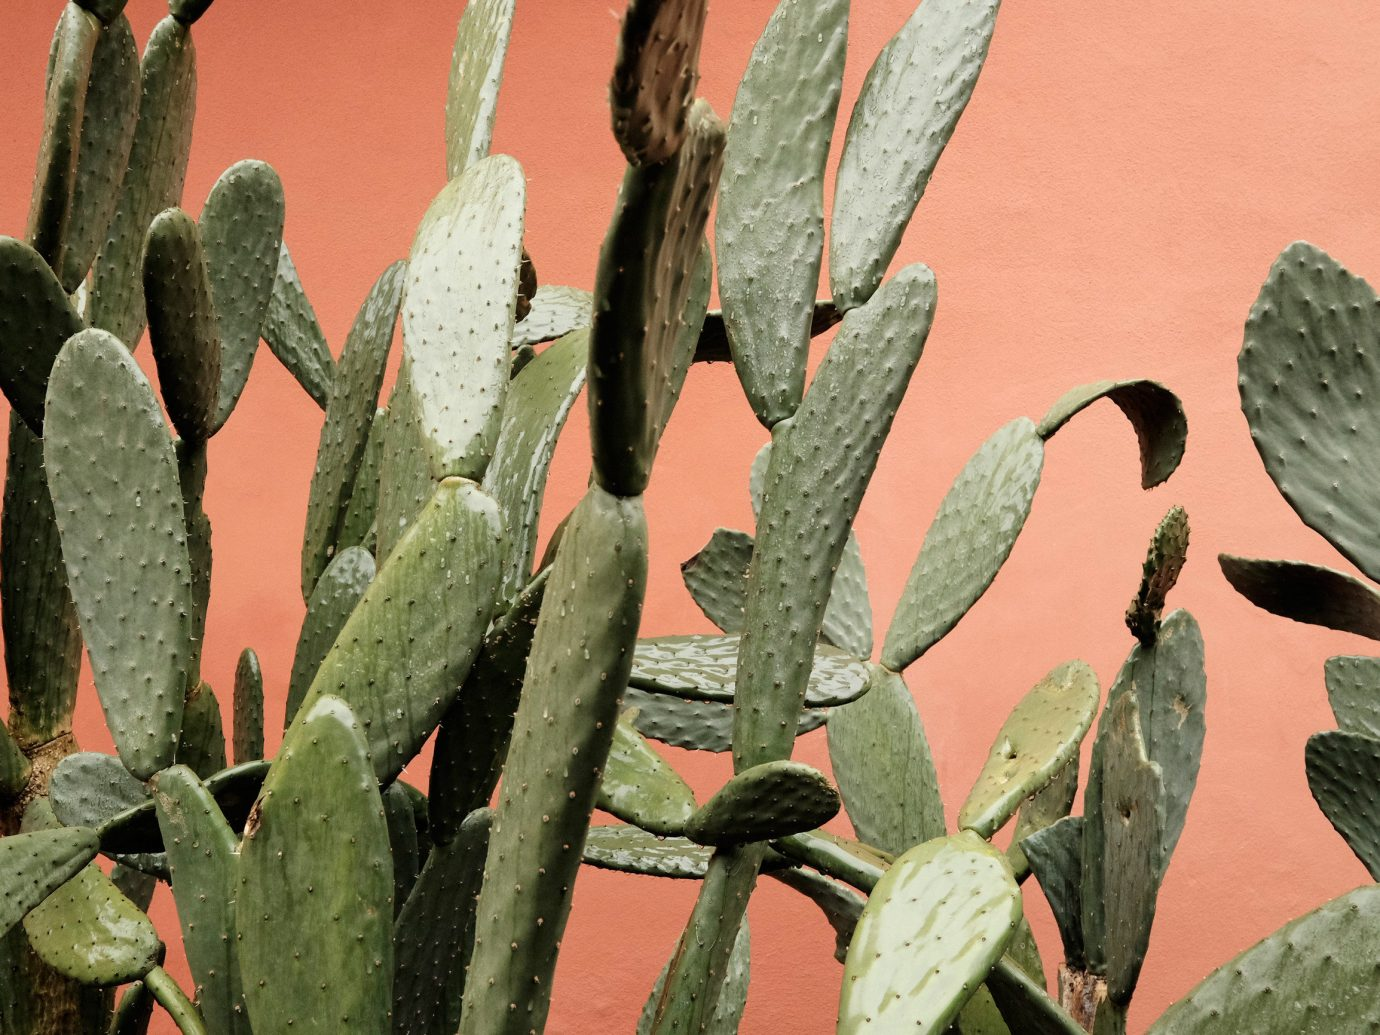 Style + Design cactus Nature plant flora flower botany land plant flowering plant hedgehog cactus leaf nopal prickly pear thorns spines and prickles barbary fig caryophyllales plant stem